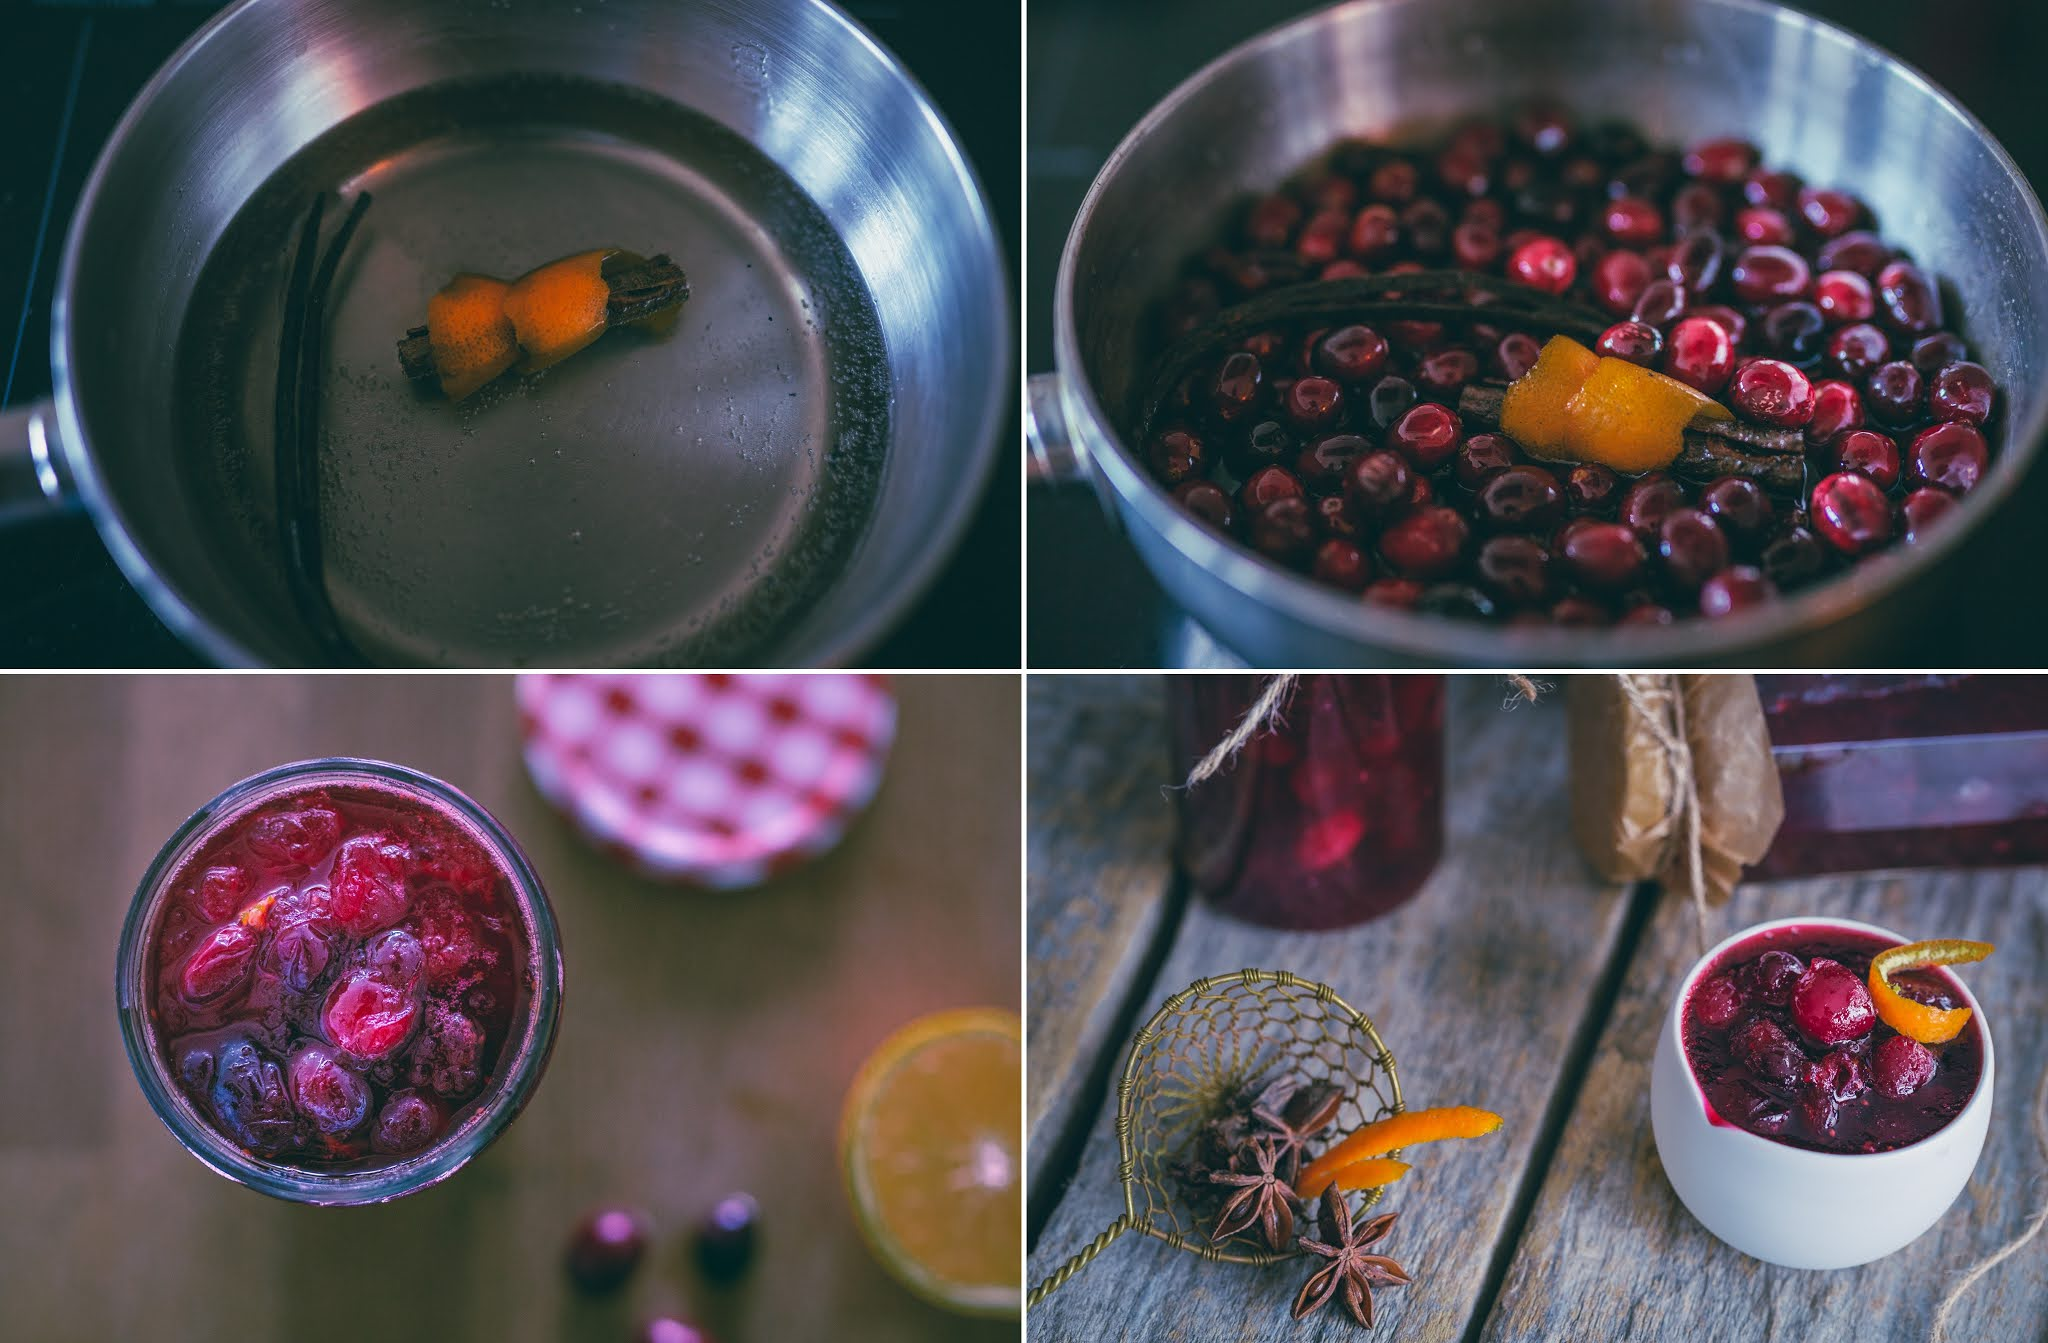 WEEKENDS IN THE KITCHEN: Cranberry Compote/ Сладко от чевени боровинки